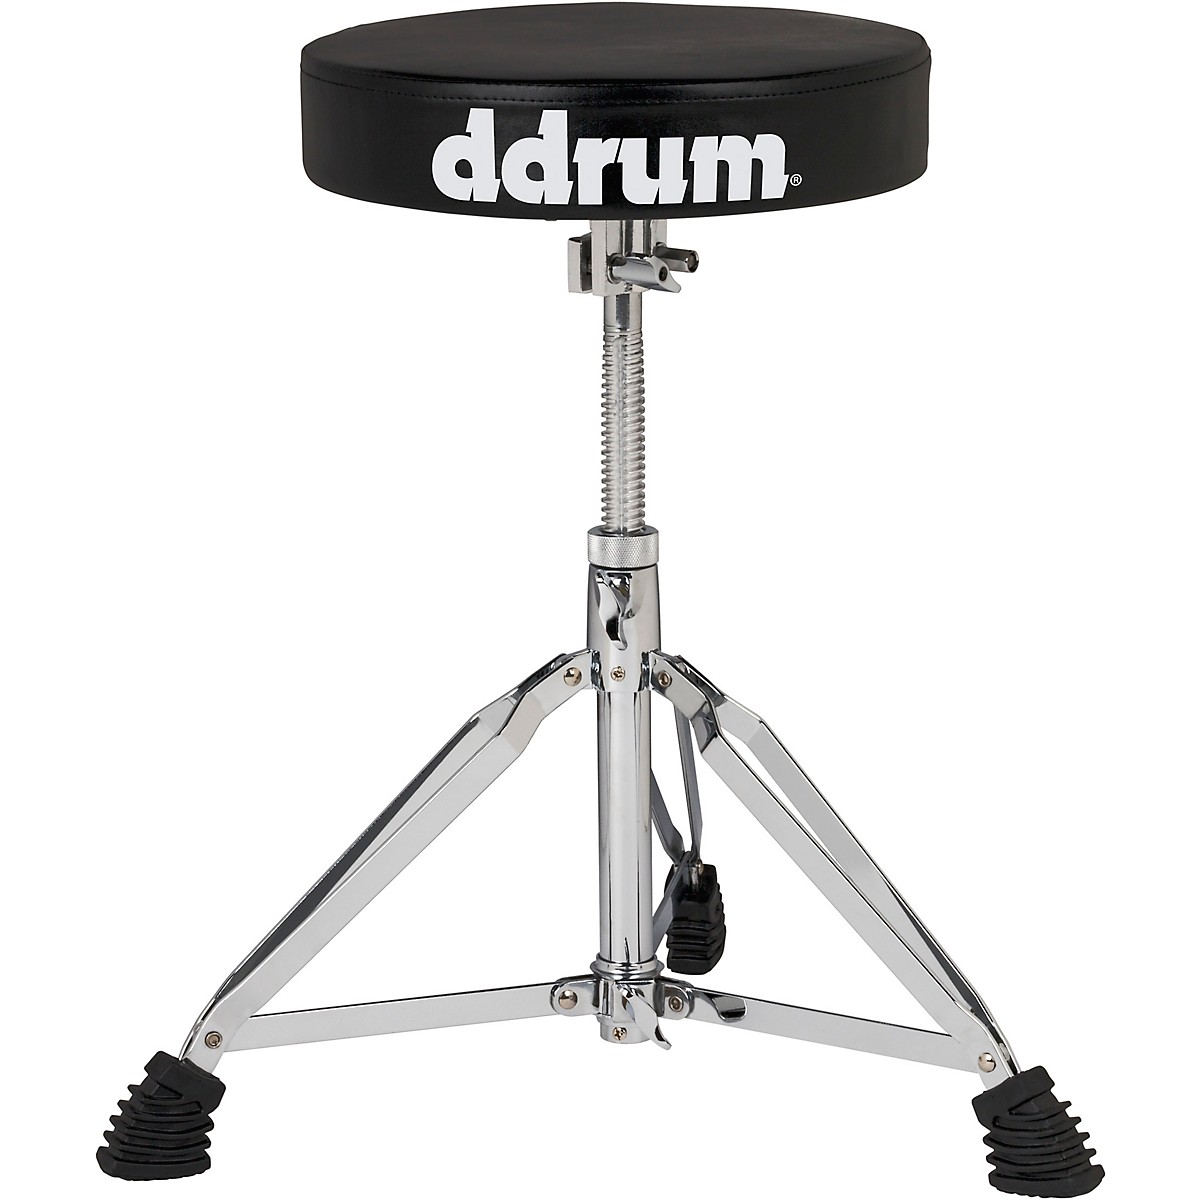 ddrum RX Series Throne with Swivel Adjustment